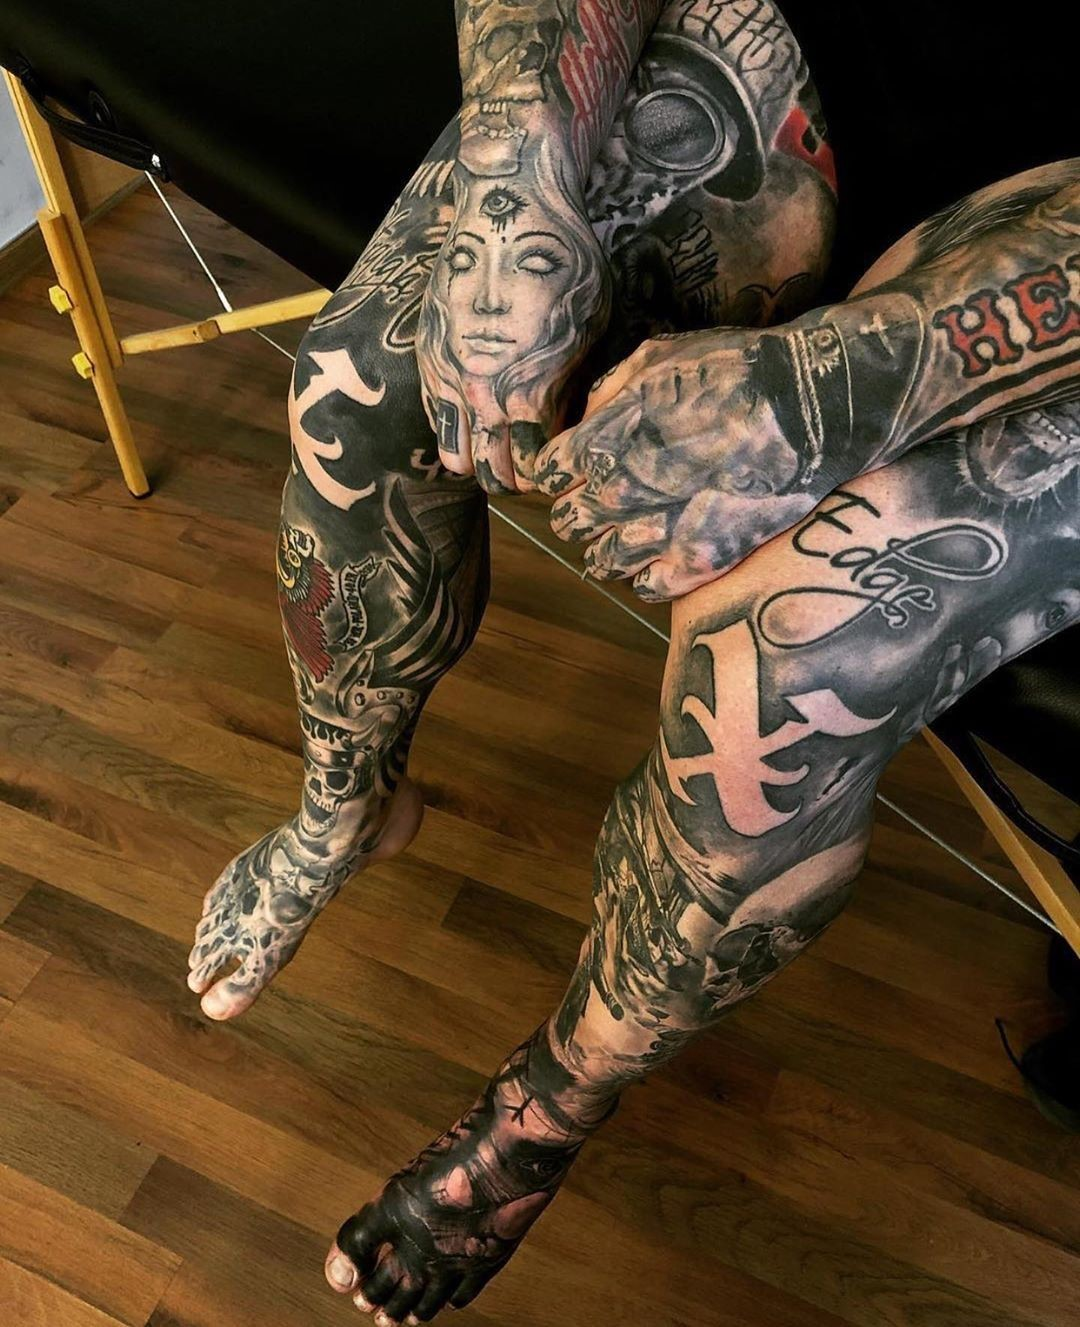 all parts of the body are filled with ink, arms and legs - would you get such tattoos for yourself?